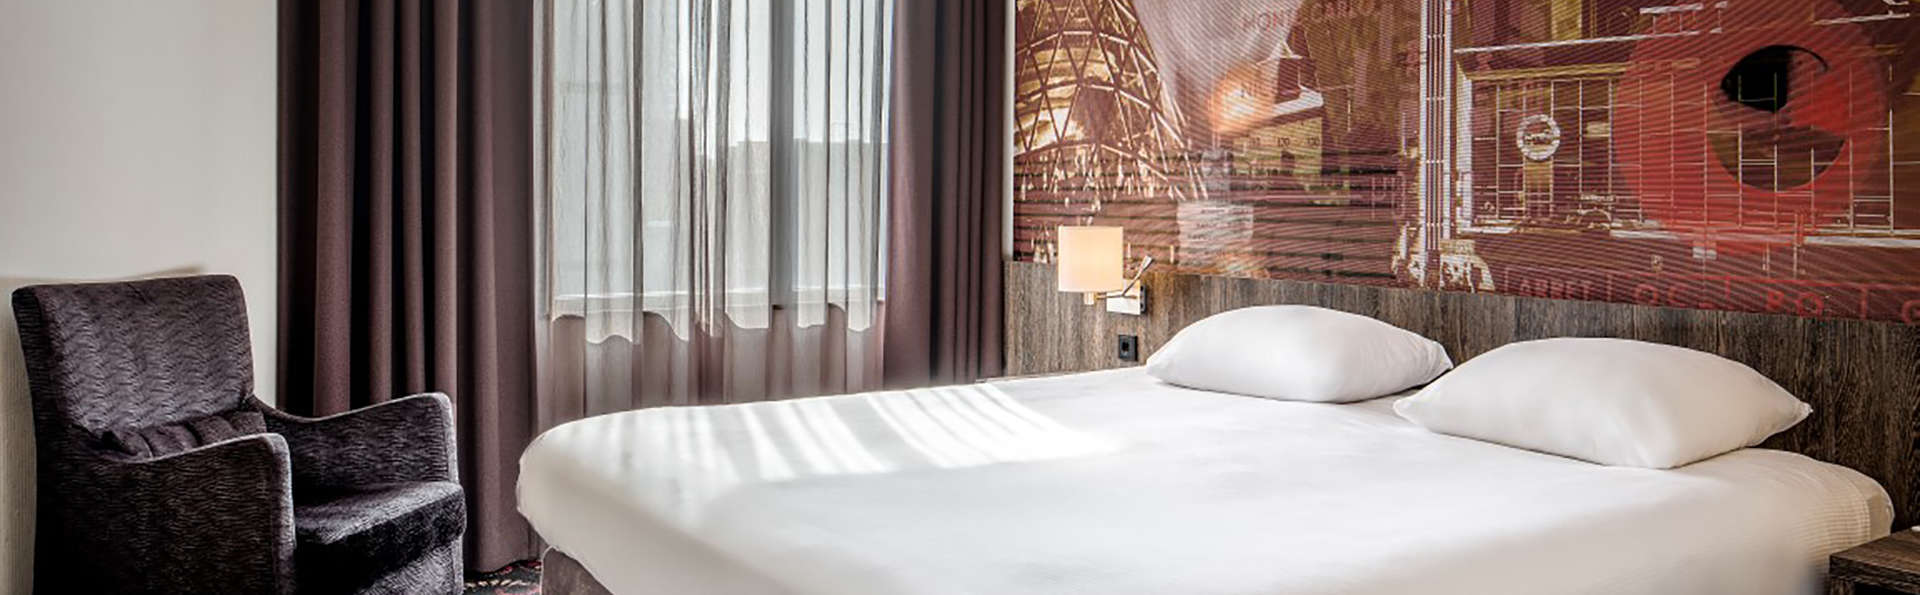 Crown Hotel Eindhoven - Edit_Room4.jpg